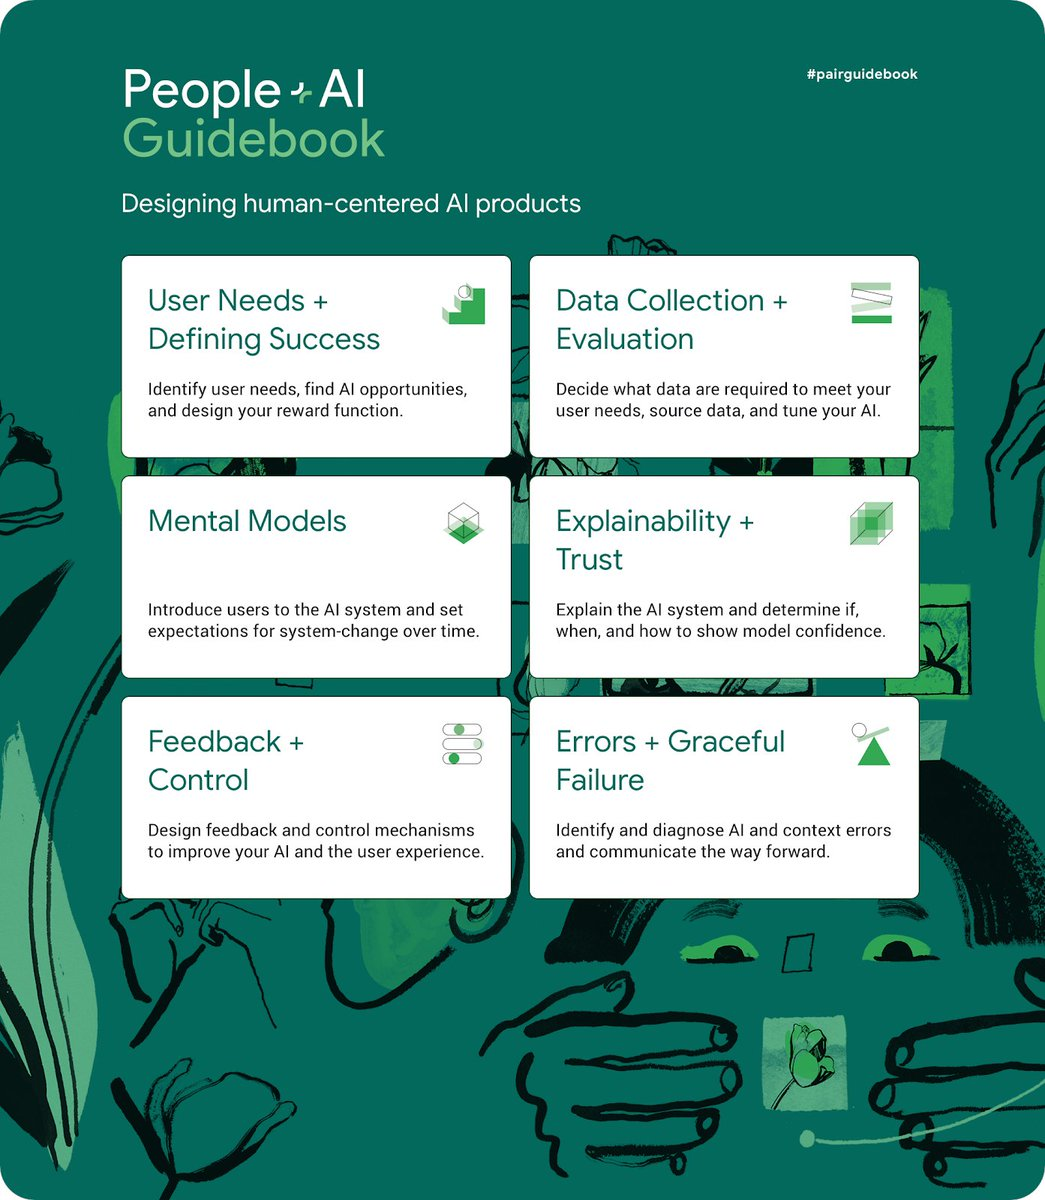 test Twitter Media - The People+AI Guidebook — Designing human-centered #AI products: https://t.co/9idJmGvvGf by @Google  —————— #BigData #DataScience #MachineLearning #DeepLearning #DesignThinking #CX #UX #XAI #TrustedAI https://t.co/7mWnWrVPKj